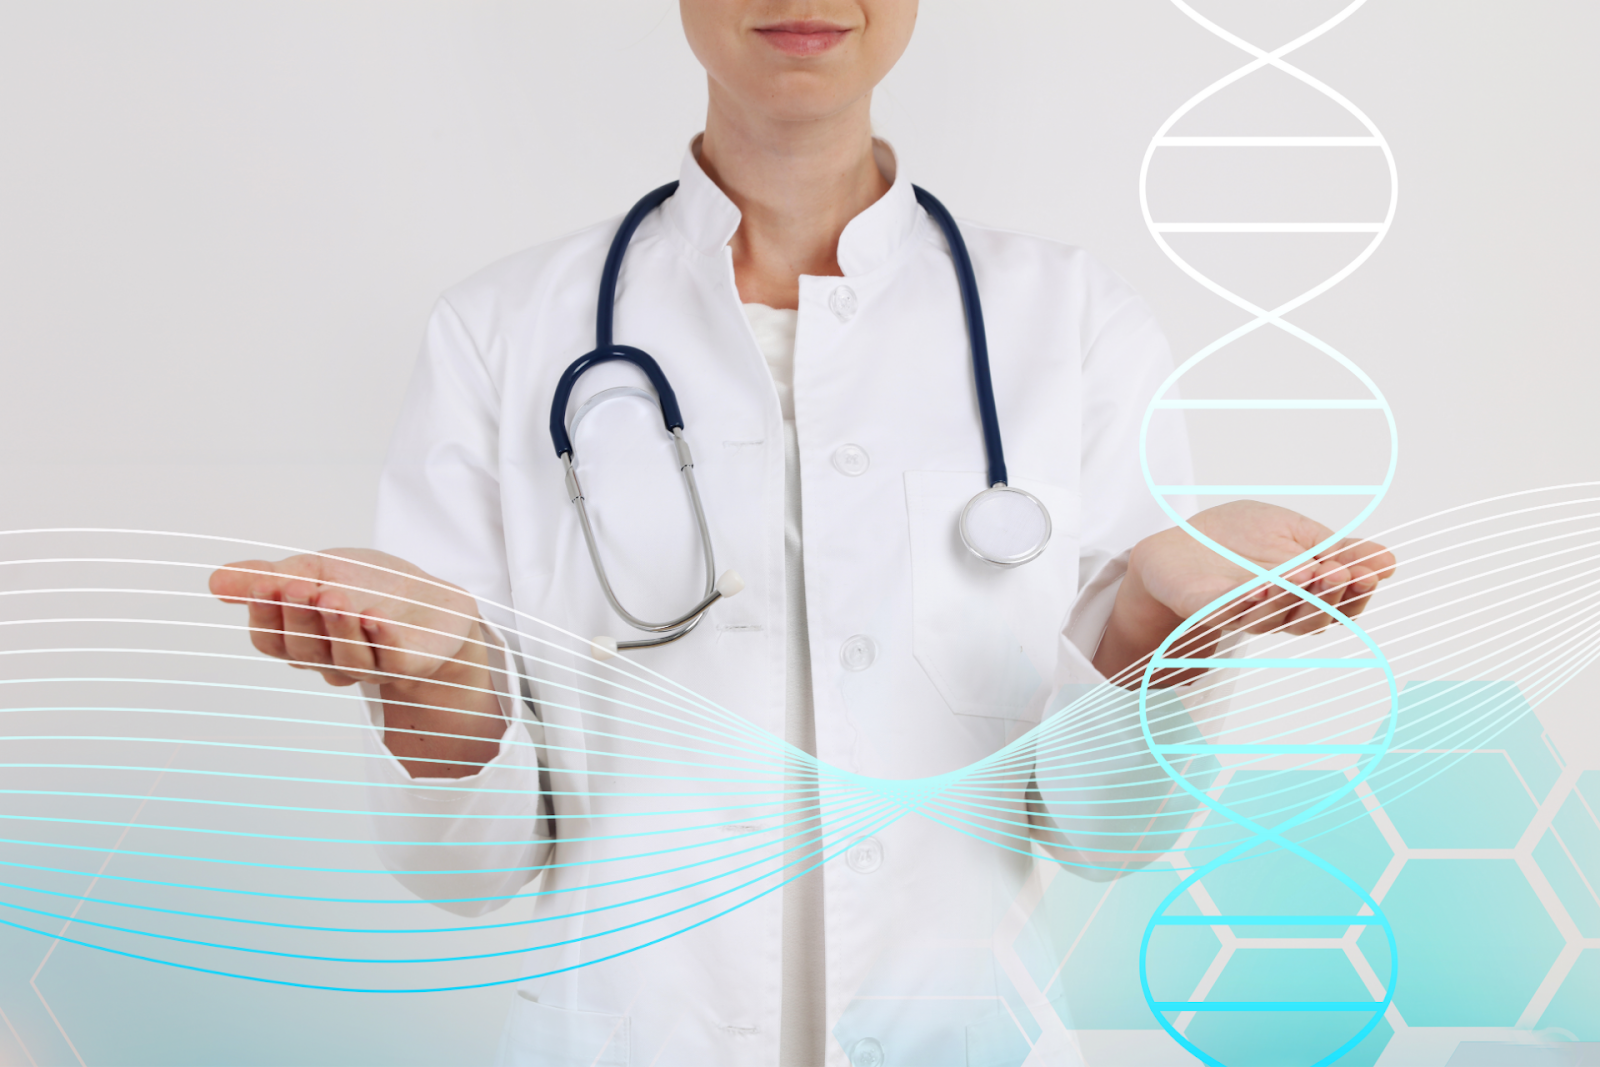 How Precision Medicine Will Change Healthcare as We Know it